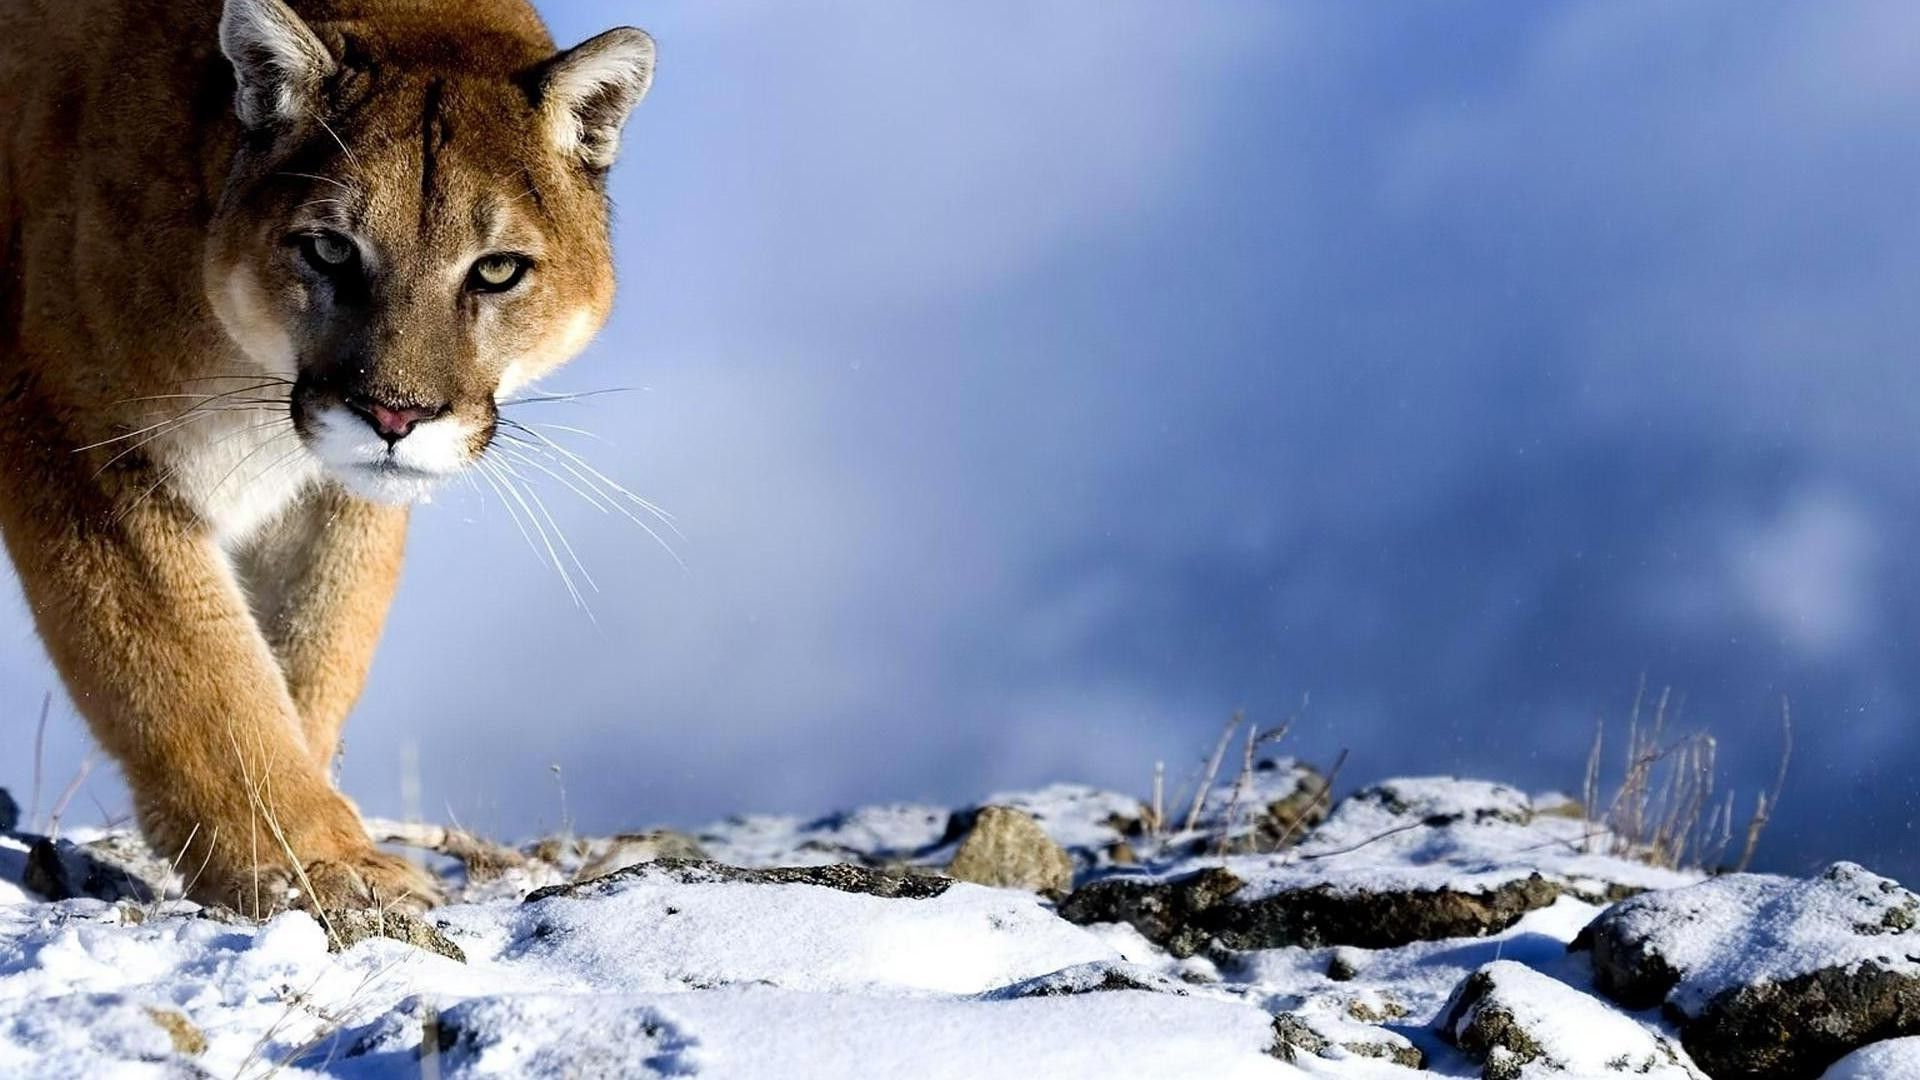 Cougar Hd picture free download